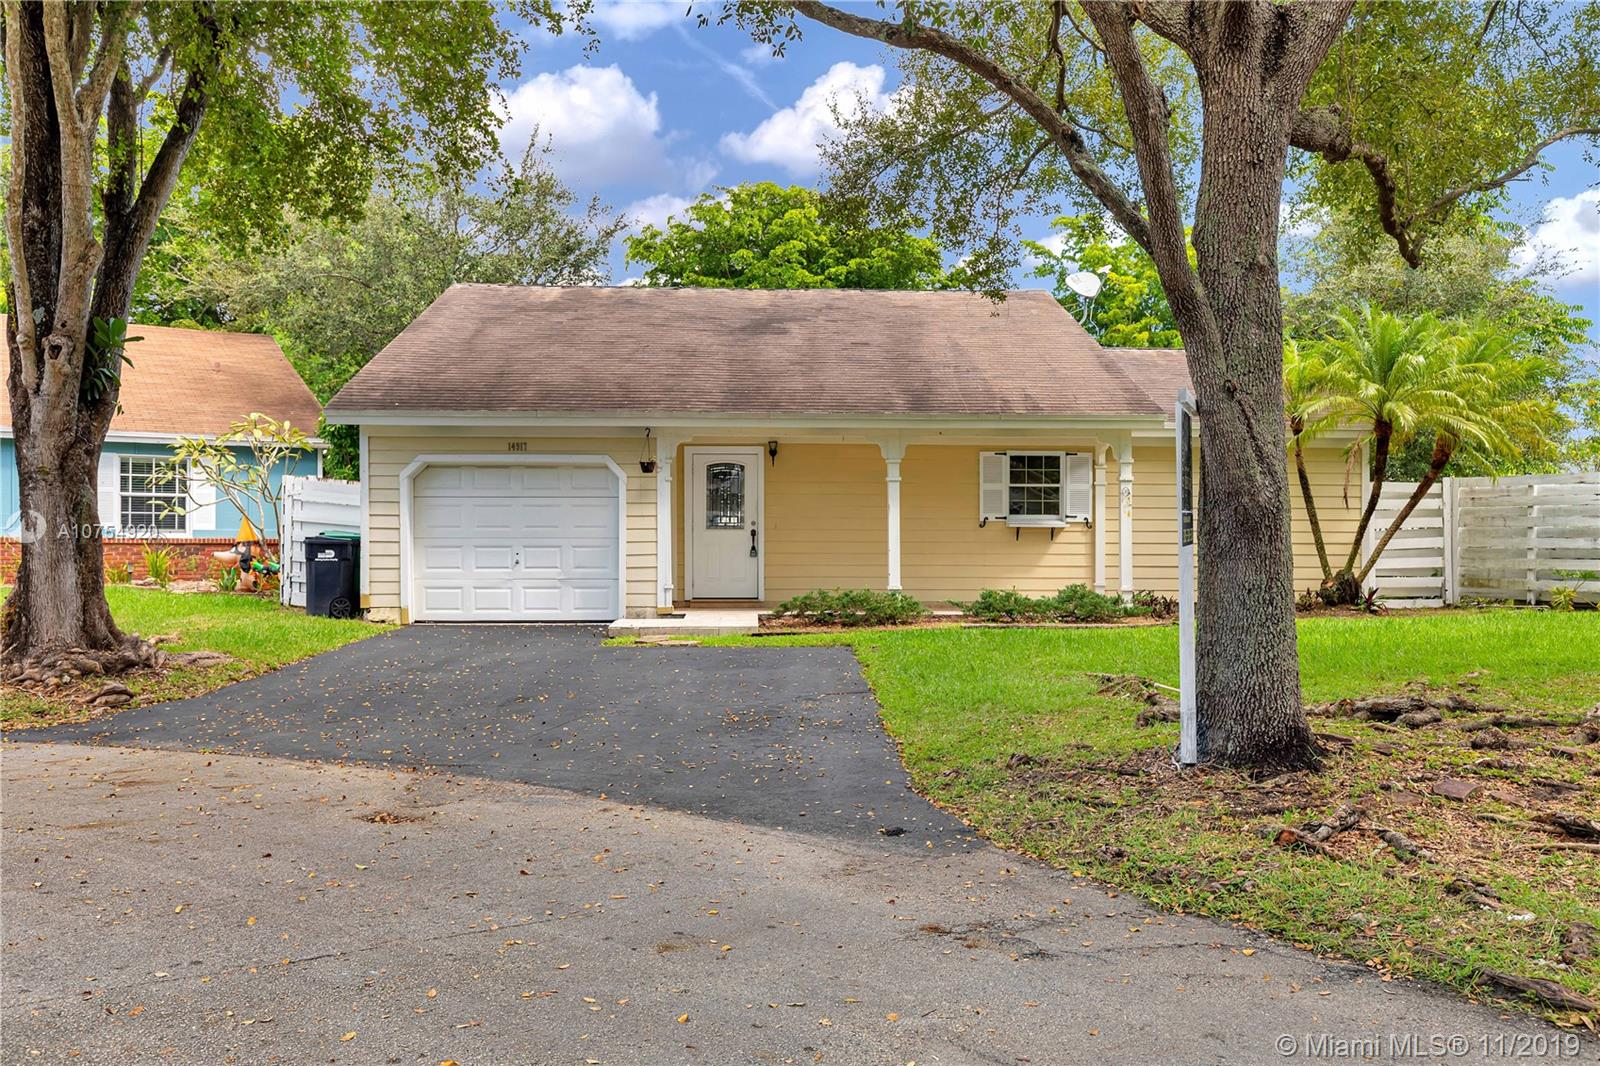 14917 SW 141st Pl, Kendall in Miami-dade County County, FL 33186 Home for Sale